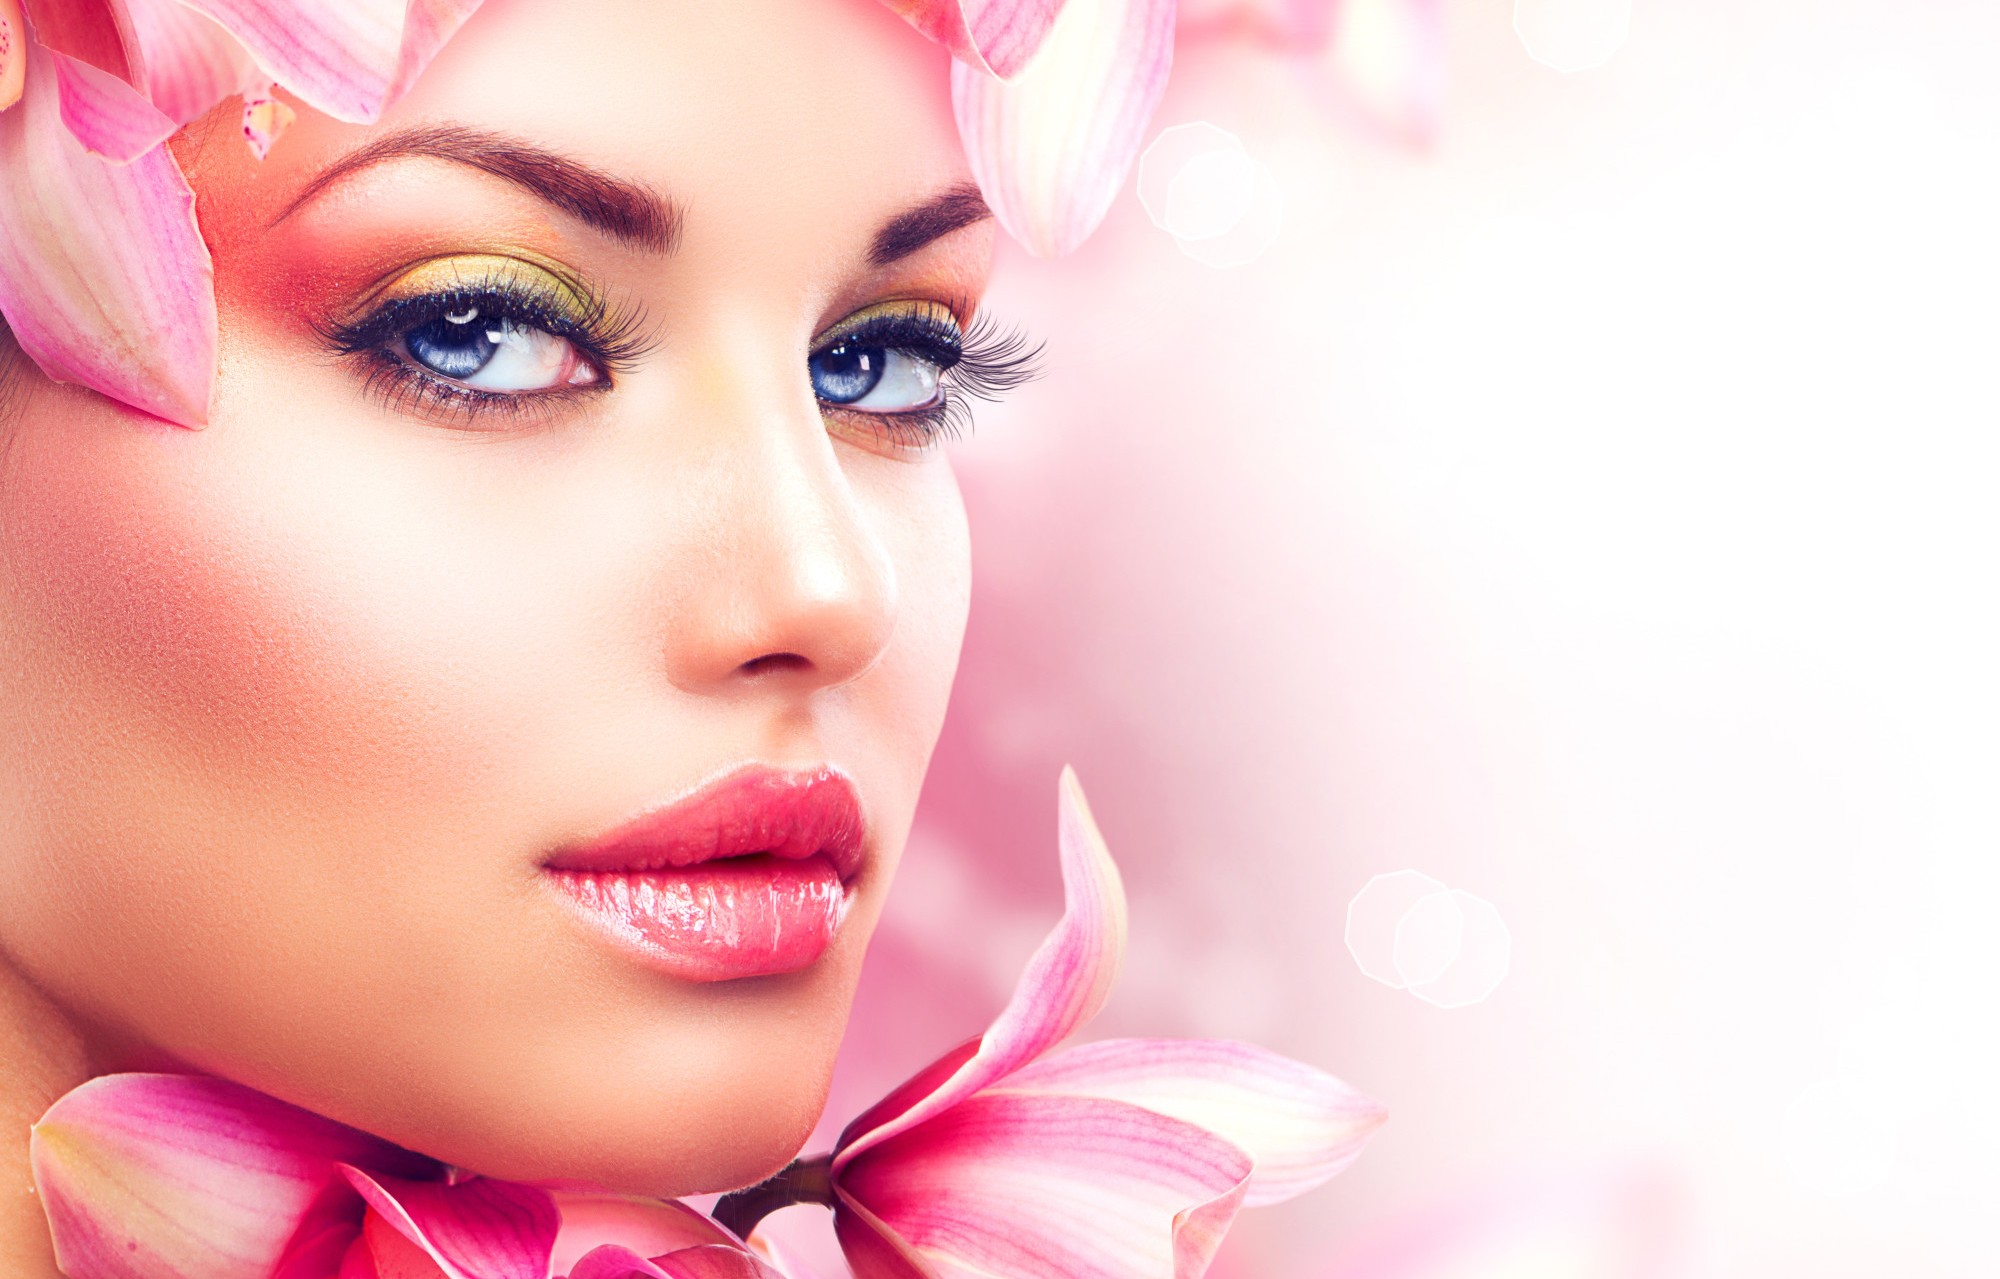 Engage On The Proposition of Semi-permanent Makeup Enhancement Program